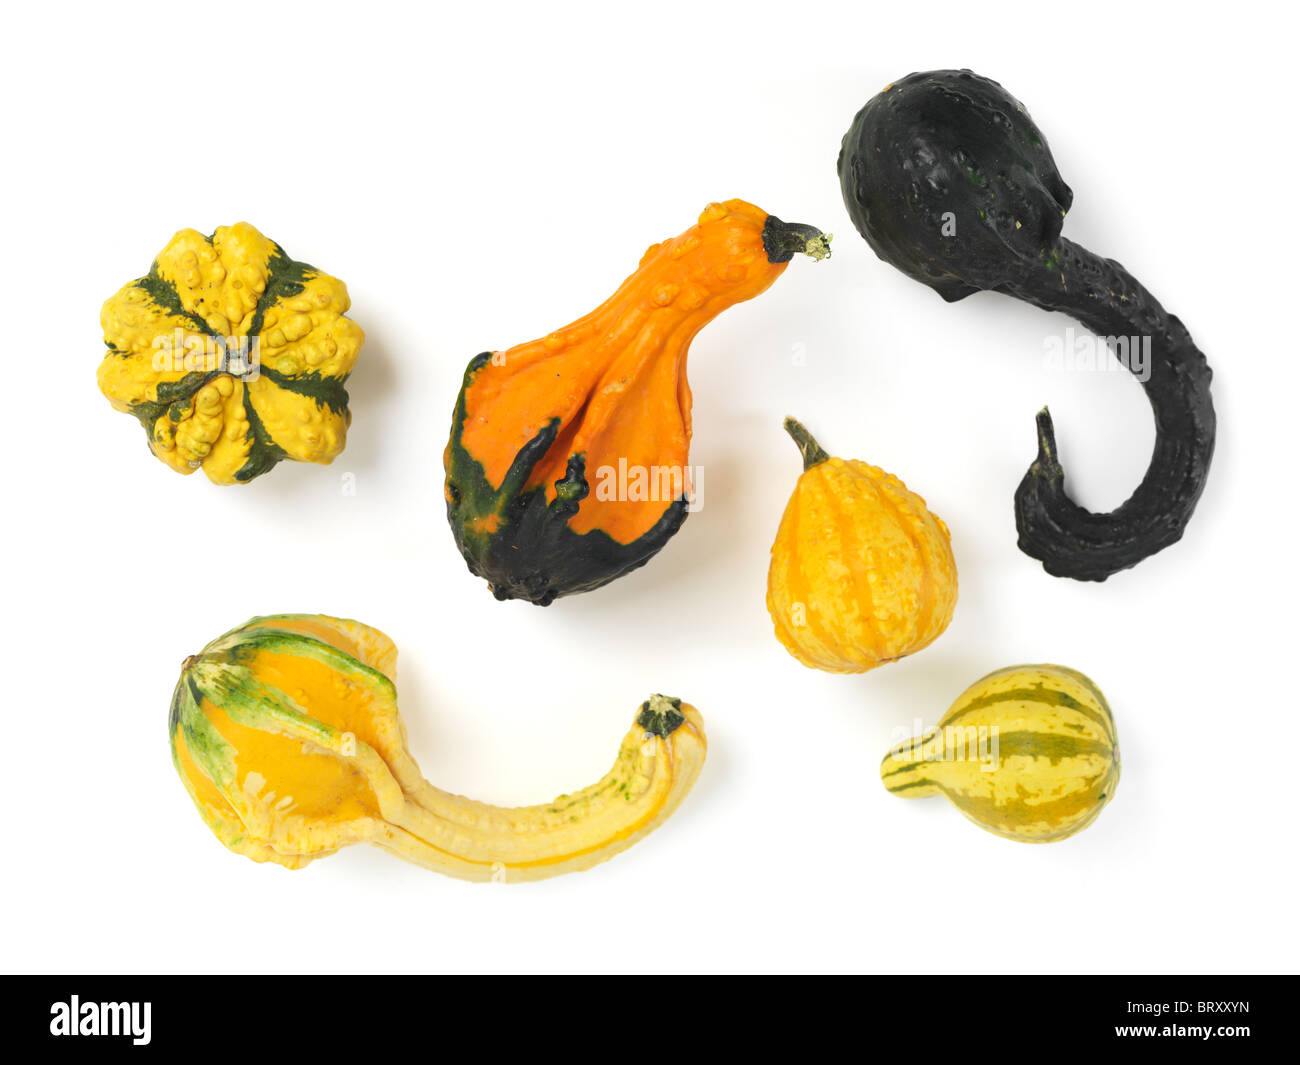 Colorful gourds isolated on white background - Stock Image